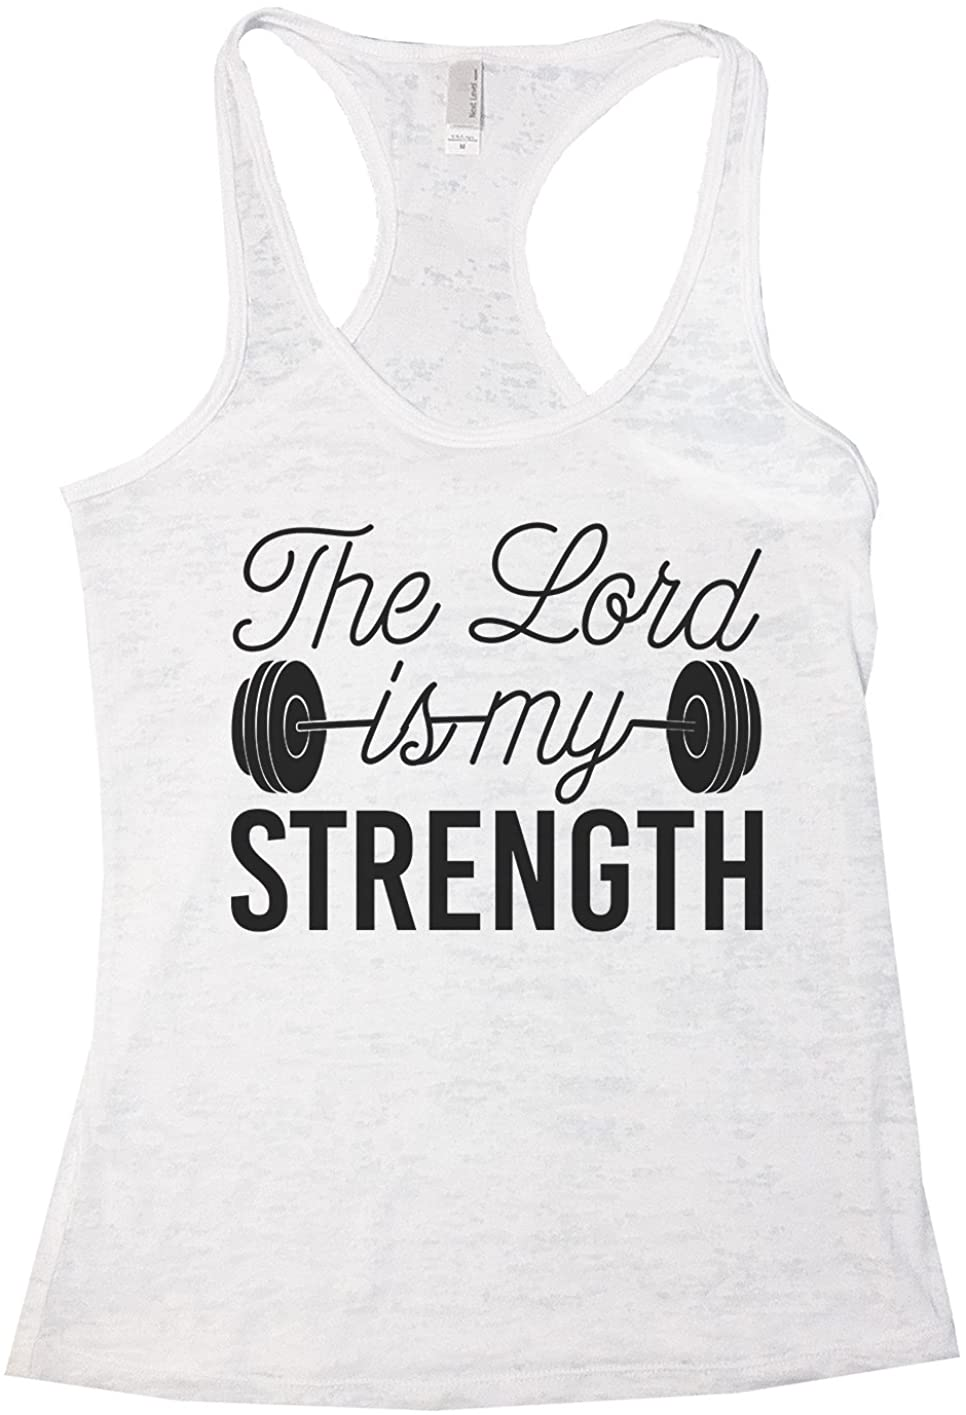 """Funny Threadz Women's Burnout Tank Top Religious Jesus Shirt """"The Lord is My Strength"""